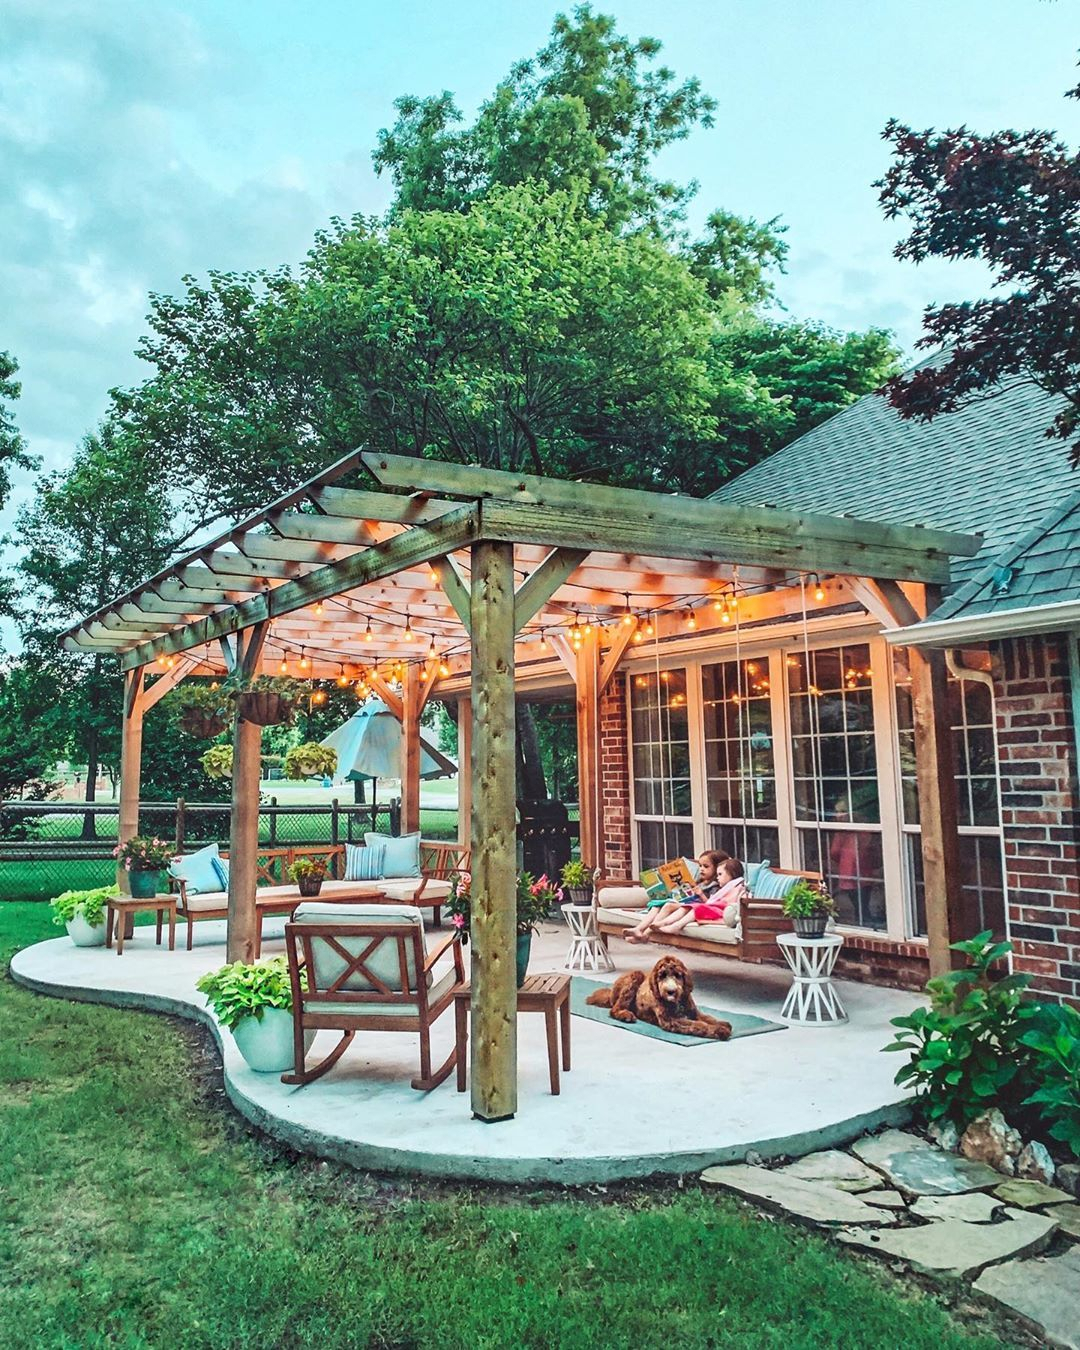 Patio Life – Summer Nights Outside On The Porch Swing Under Within Patio Gazebo Porch Swings (View 12 of 25)